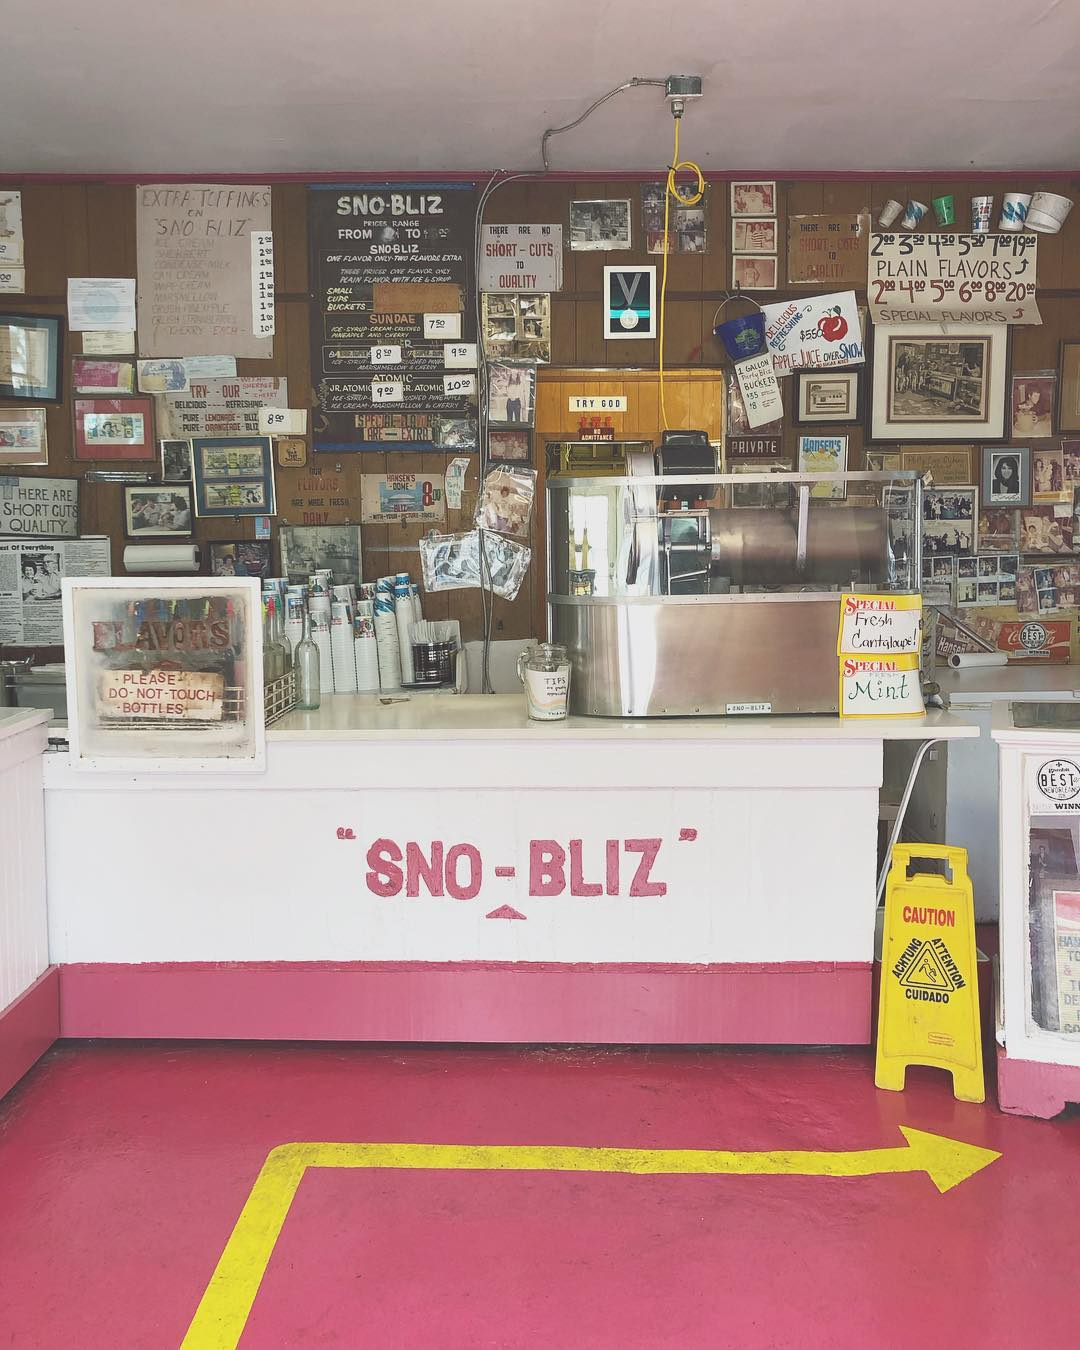 First Sunday of the 80th season! Come have a Sno-Bliz! We are open!